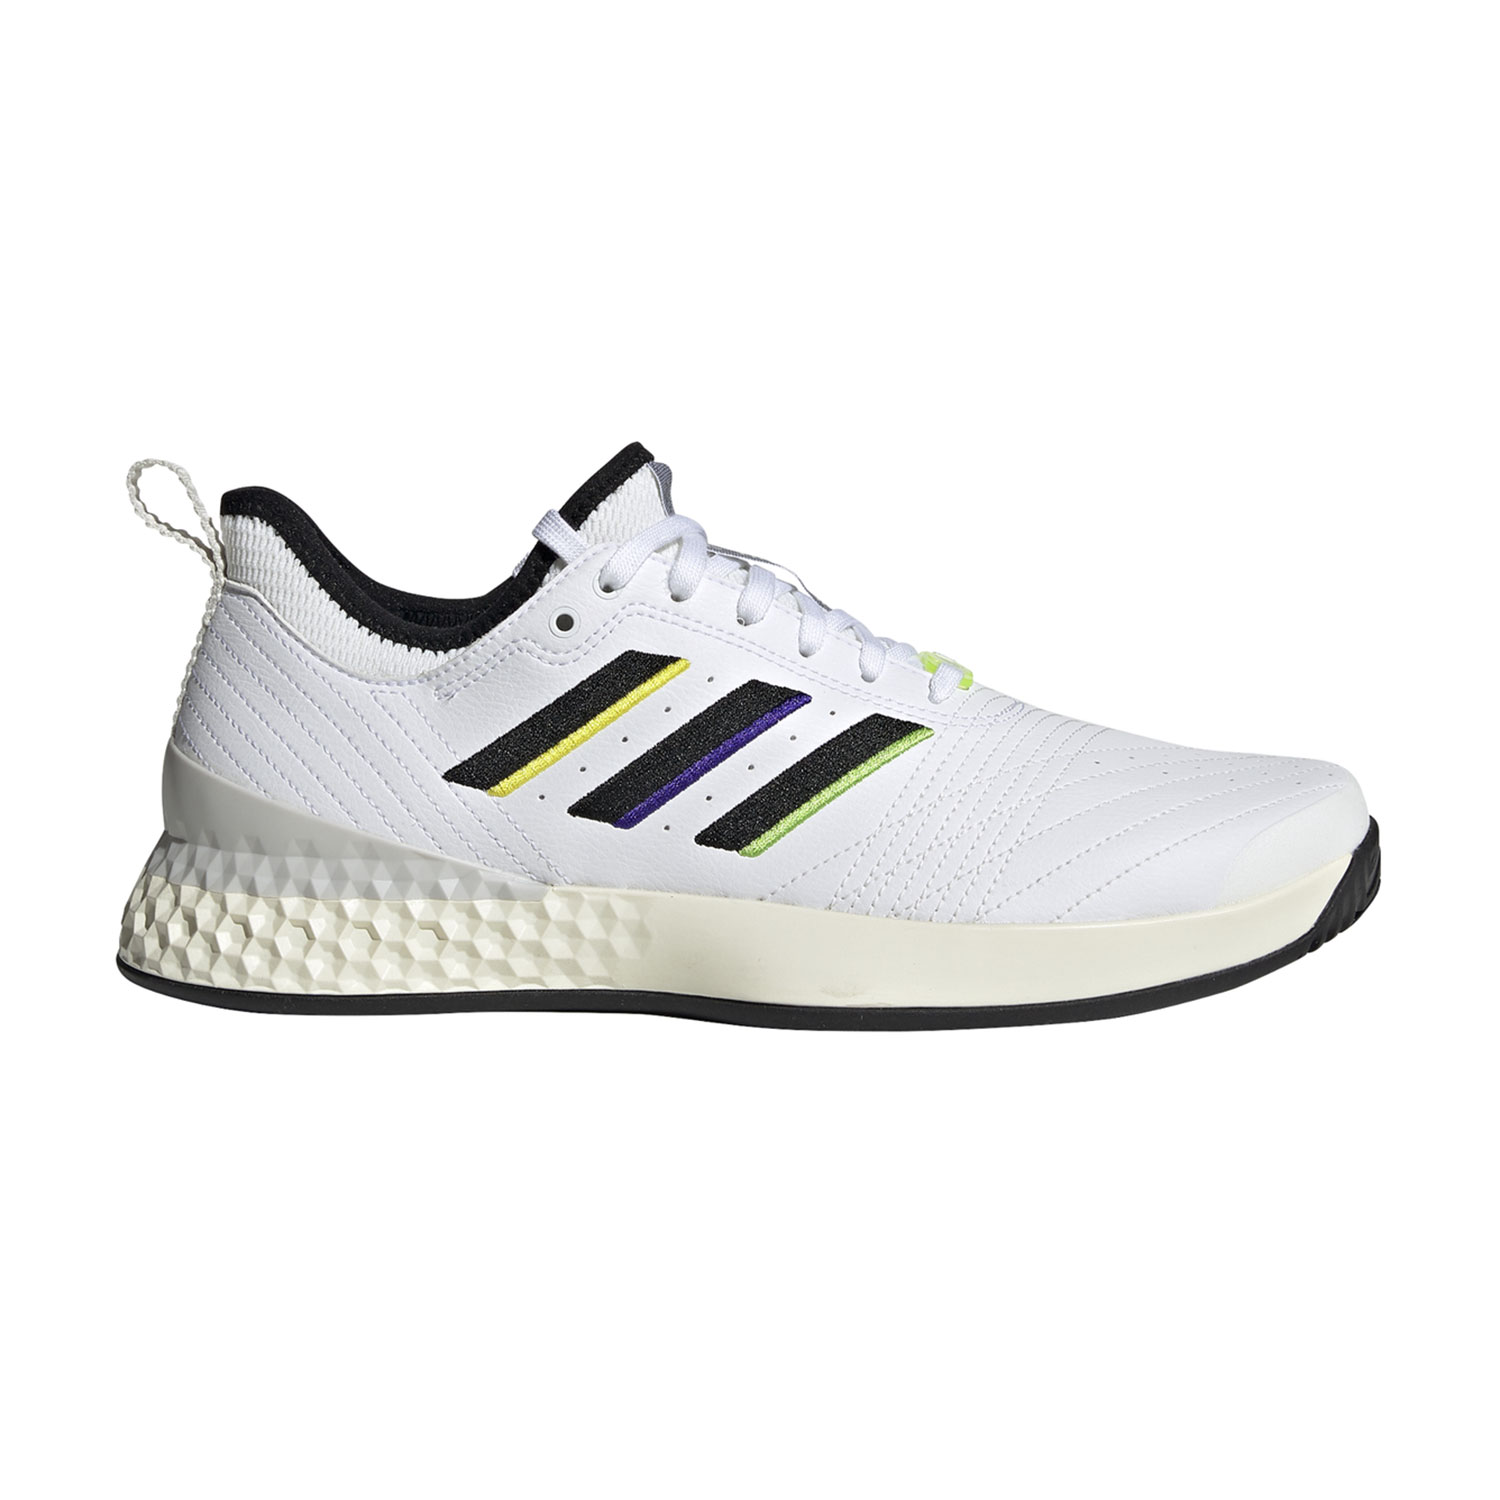 Adidas Adizero Ubersonic 3.0 LTD - White/Core Black/Cream White